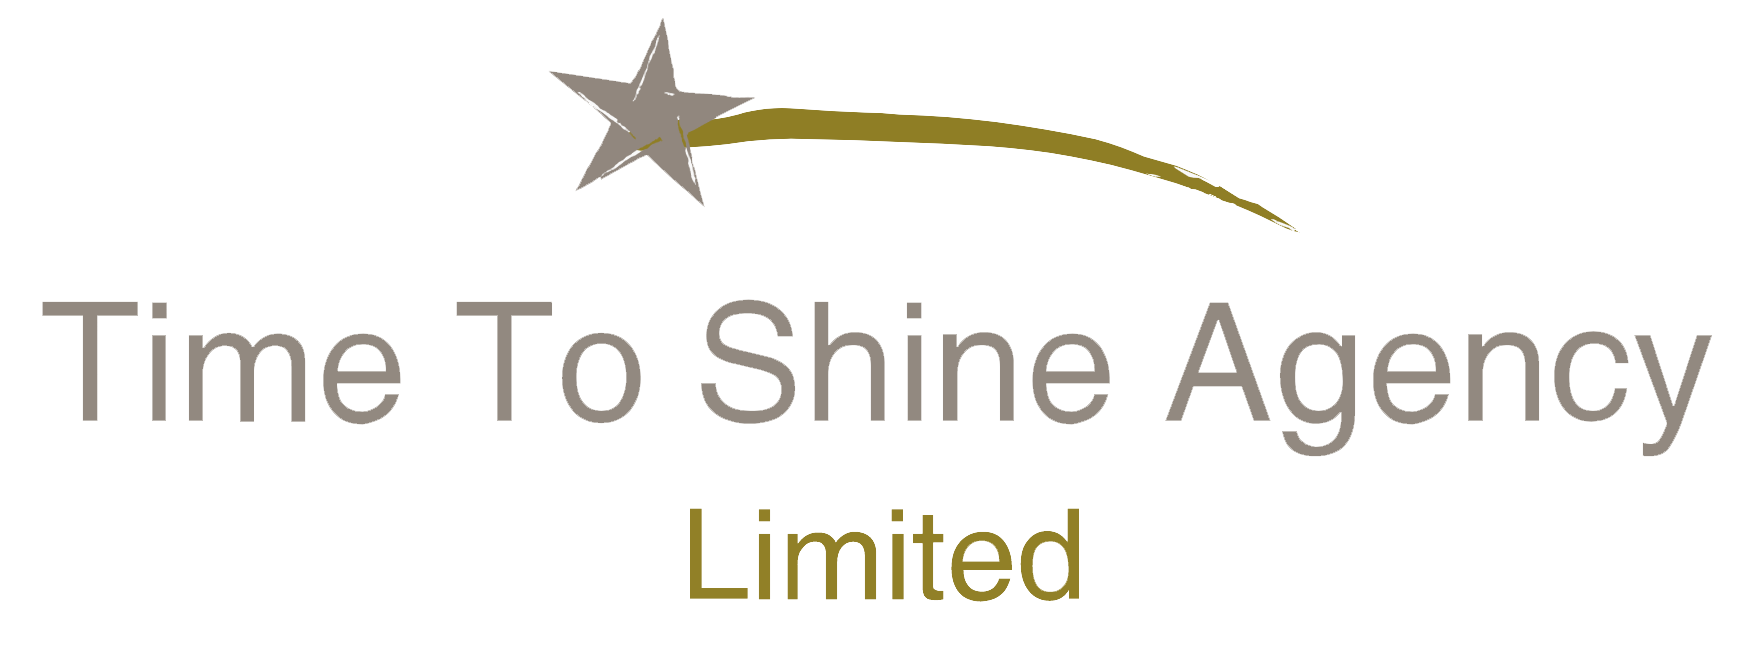 Time to Shine Agency London